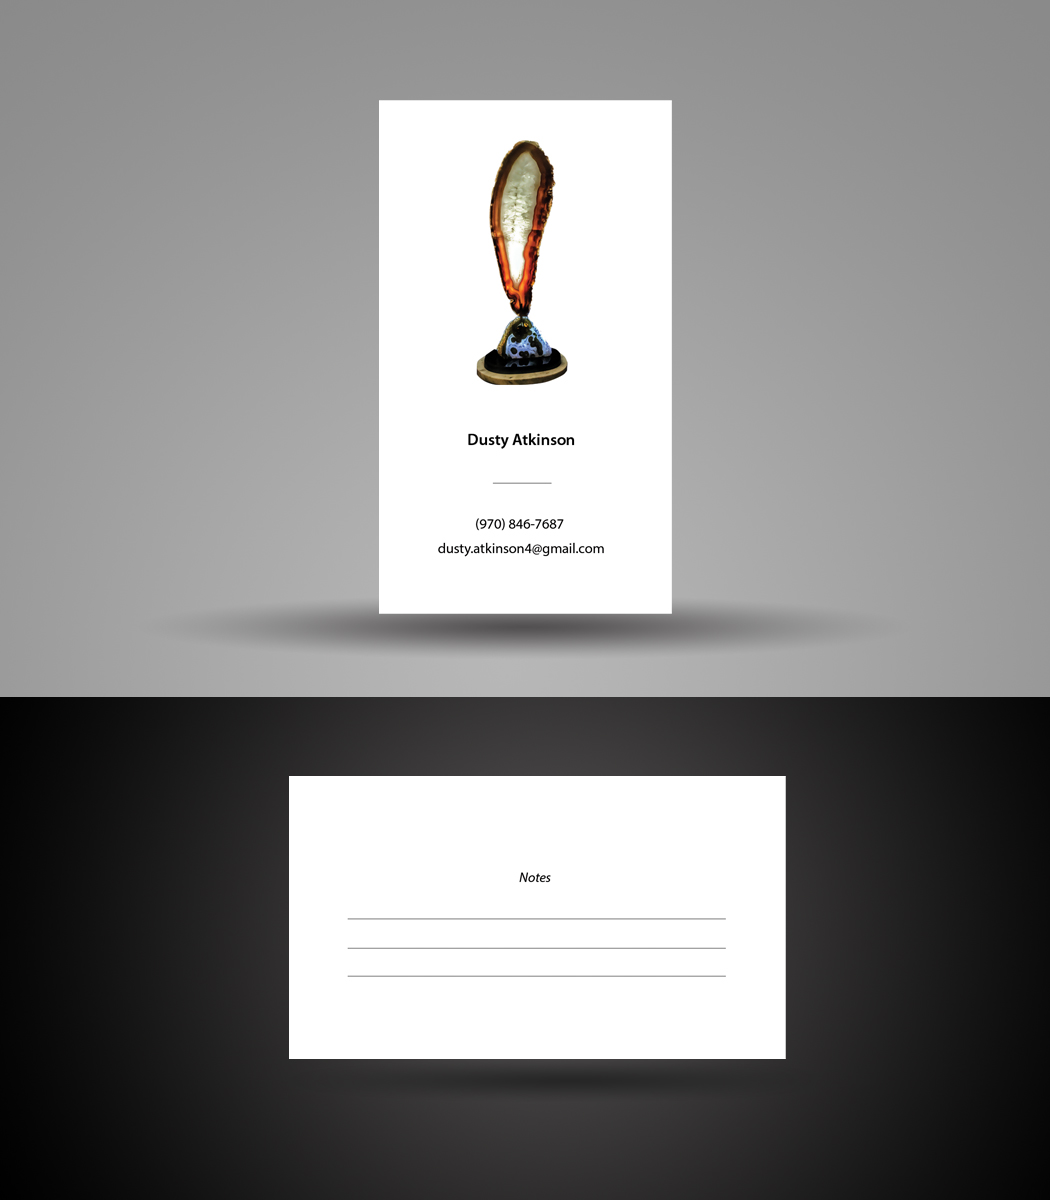 Upmarket elegant art gallery business card design for the geode business card design by satyajit sil creations for the geode guys design 18653836 reheart Images